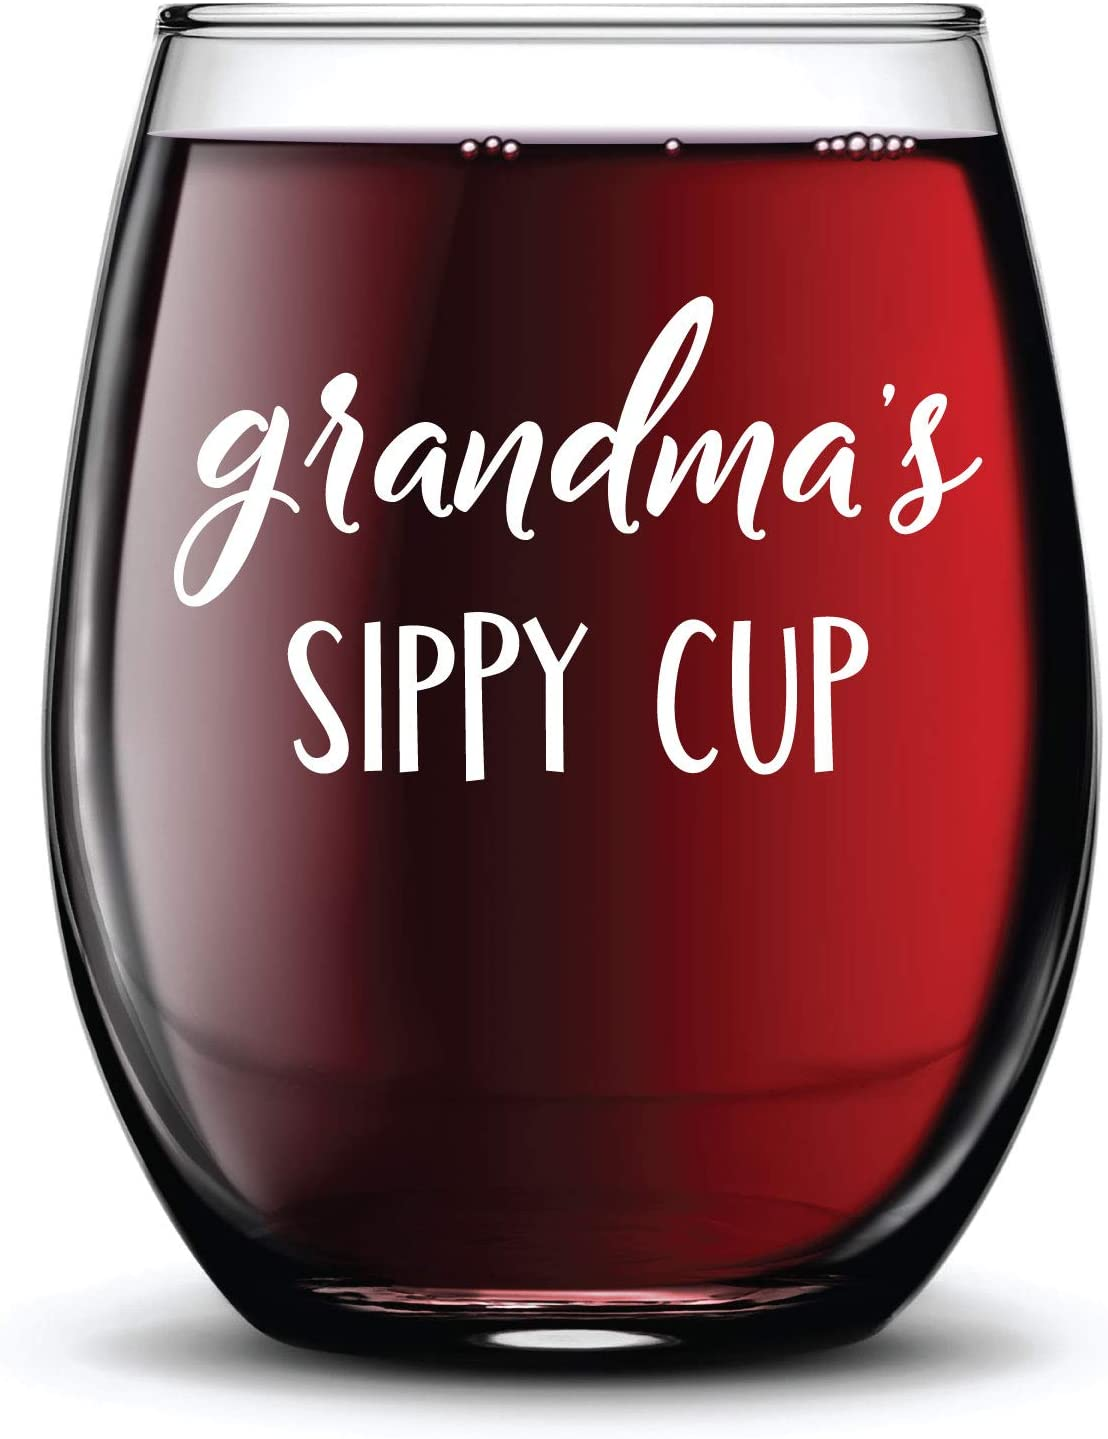 Grandma's Sippy Cup Wine Selling and selling Glass Ink Gift Permanent Ranking TOP20 Funny Stemless